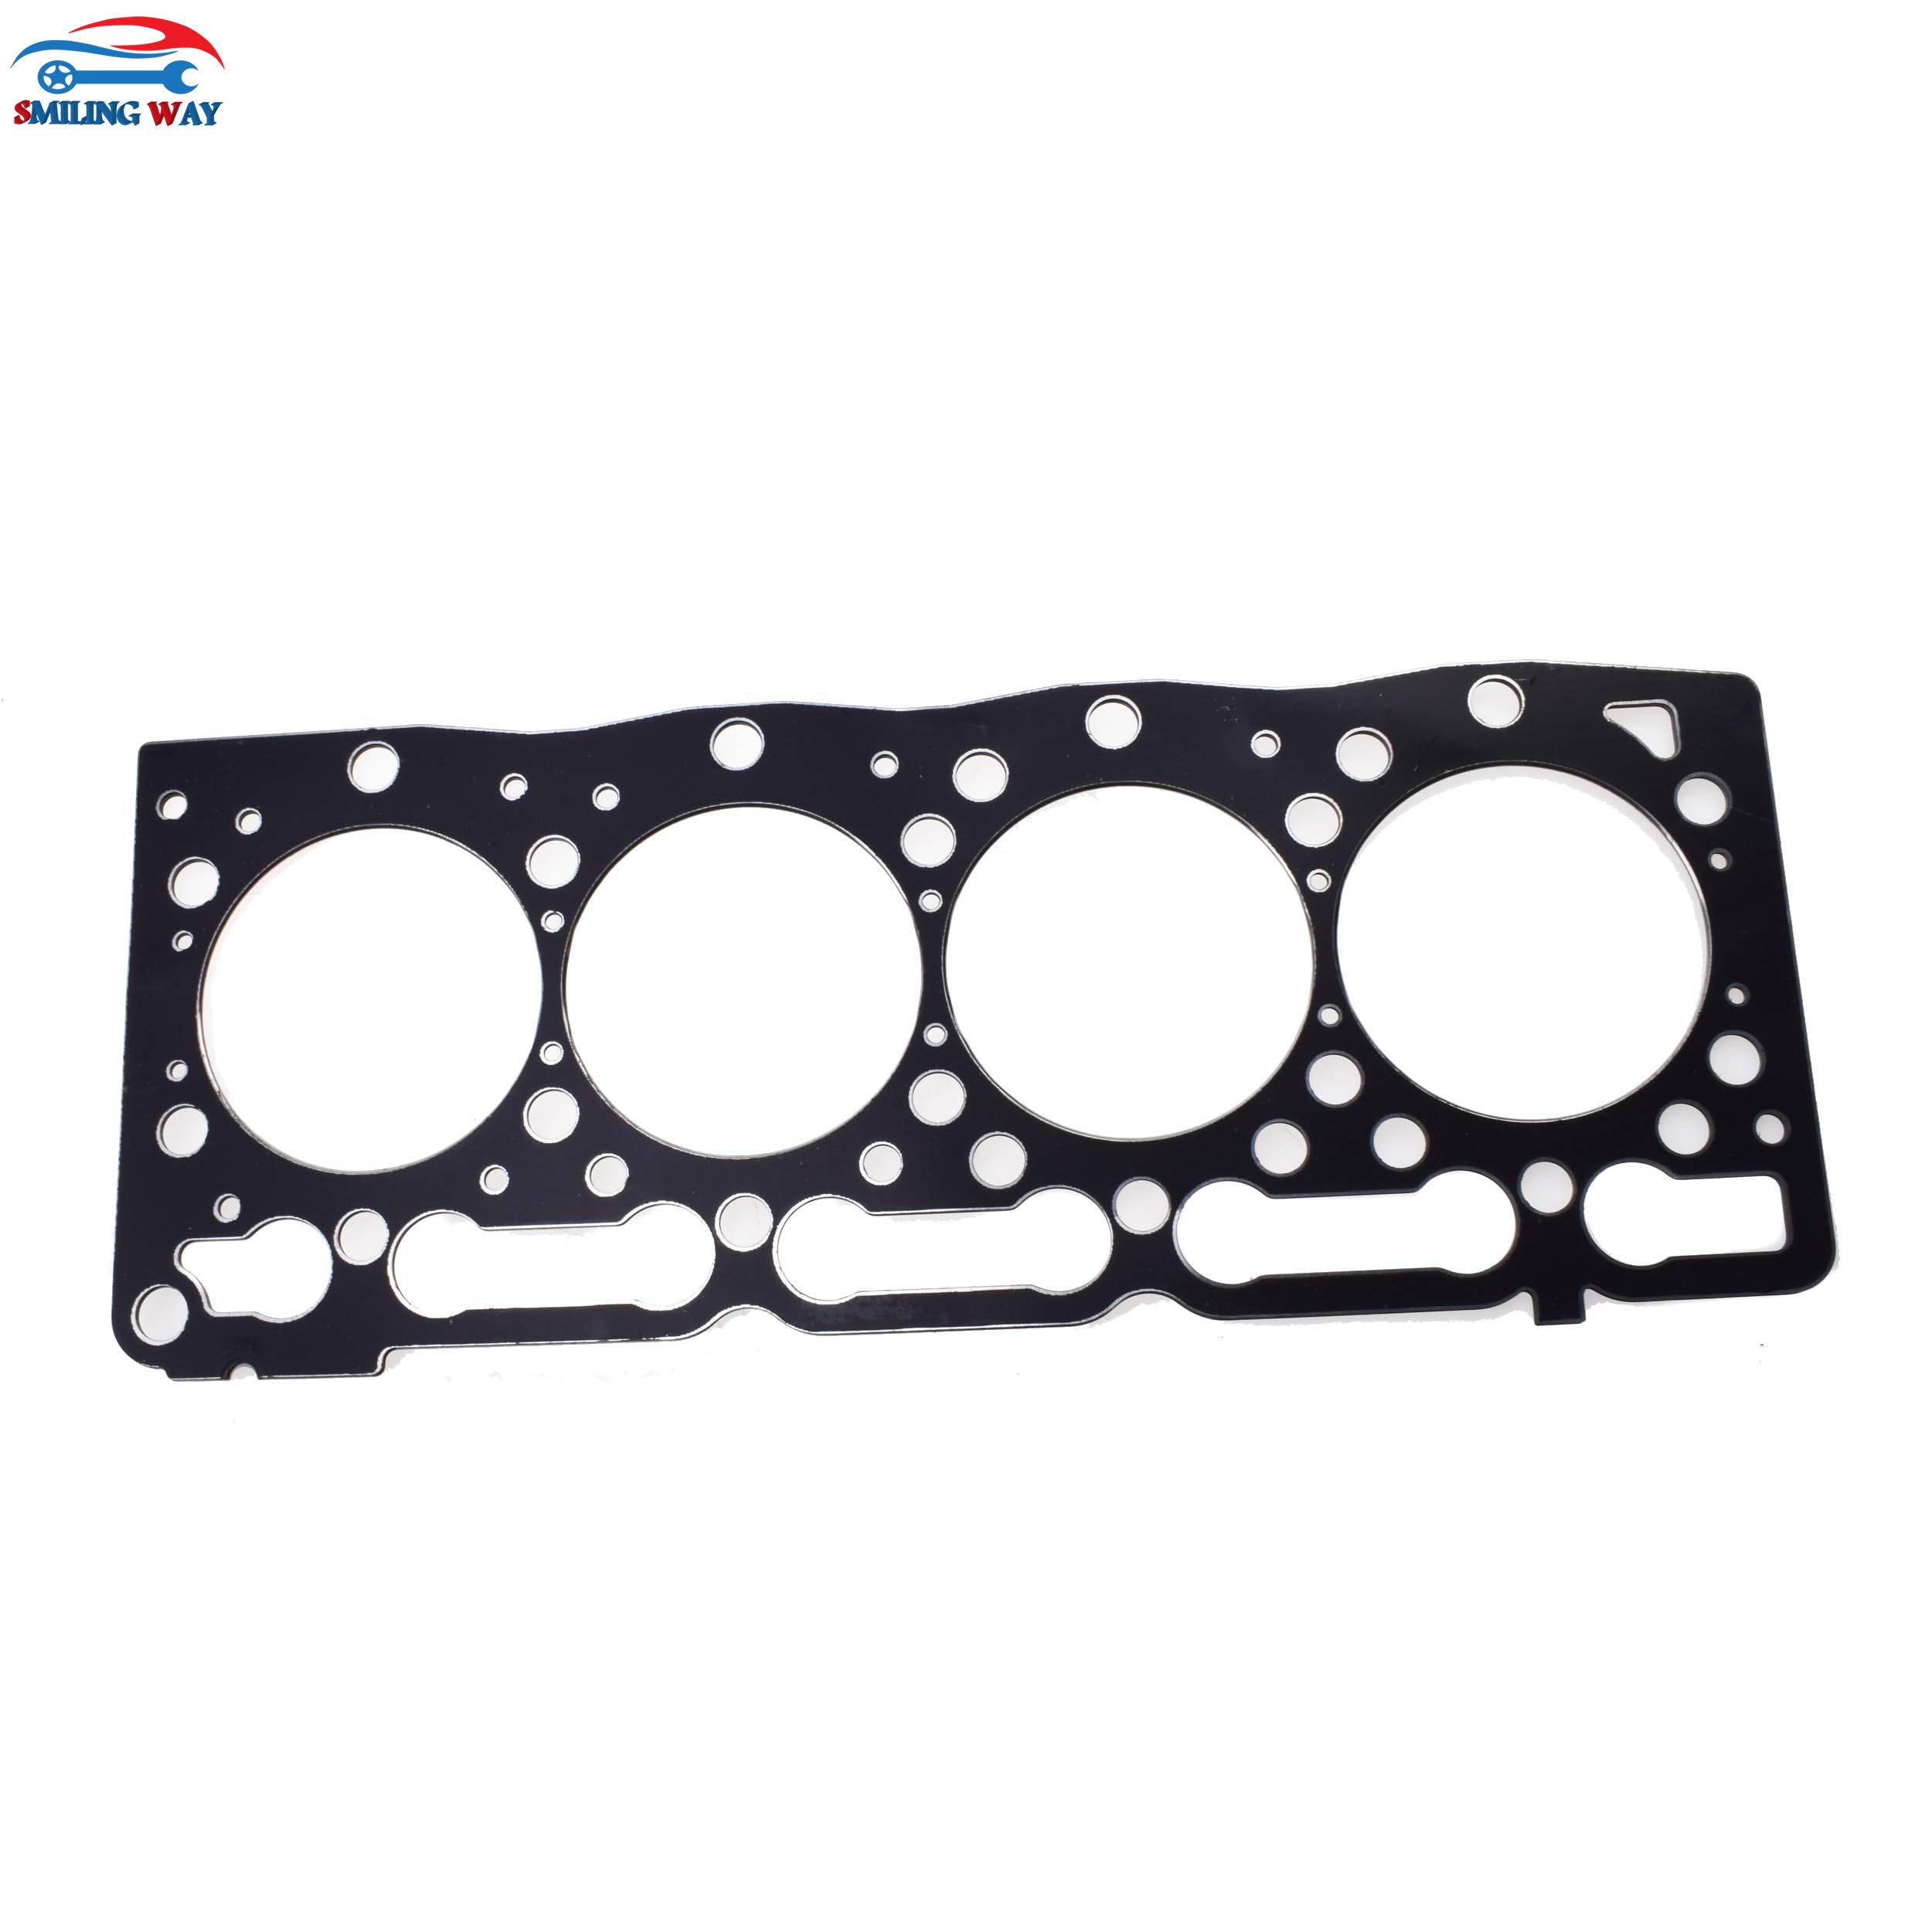 medium resolution of smiling way engine head gasket for kubota v1505 oe kbrv1712gh 16394 03310 in cyl head valve cover gasket from automobiles motorcycles on